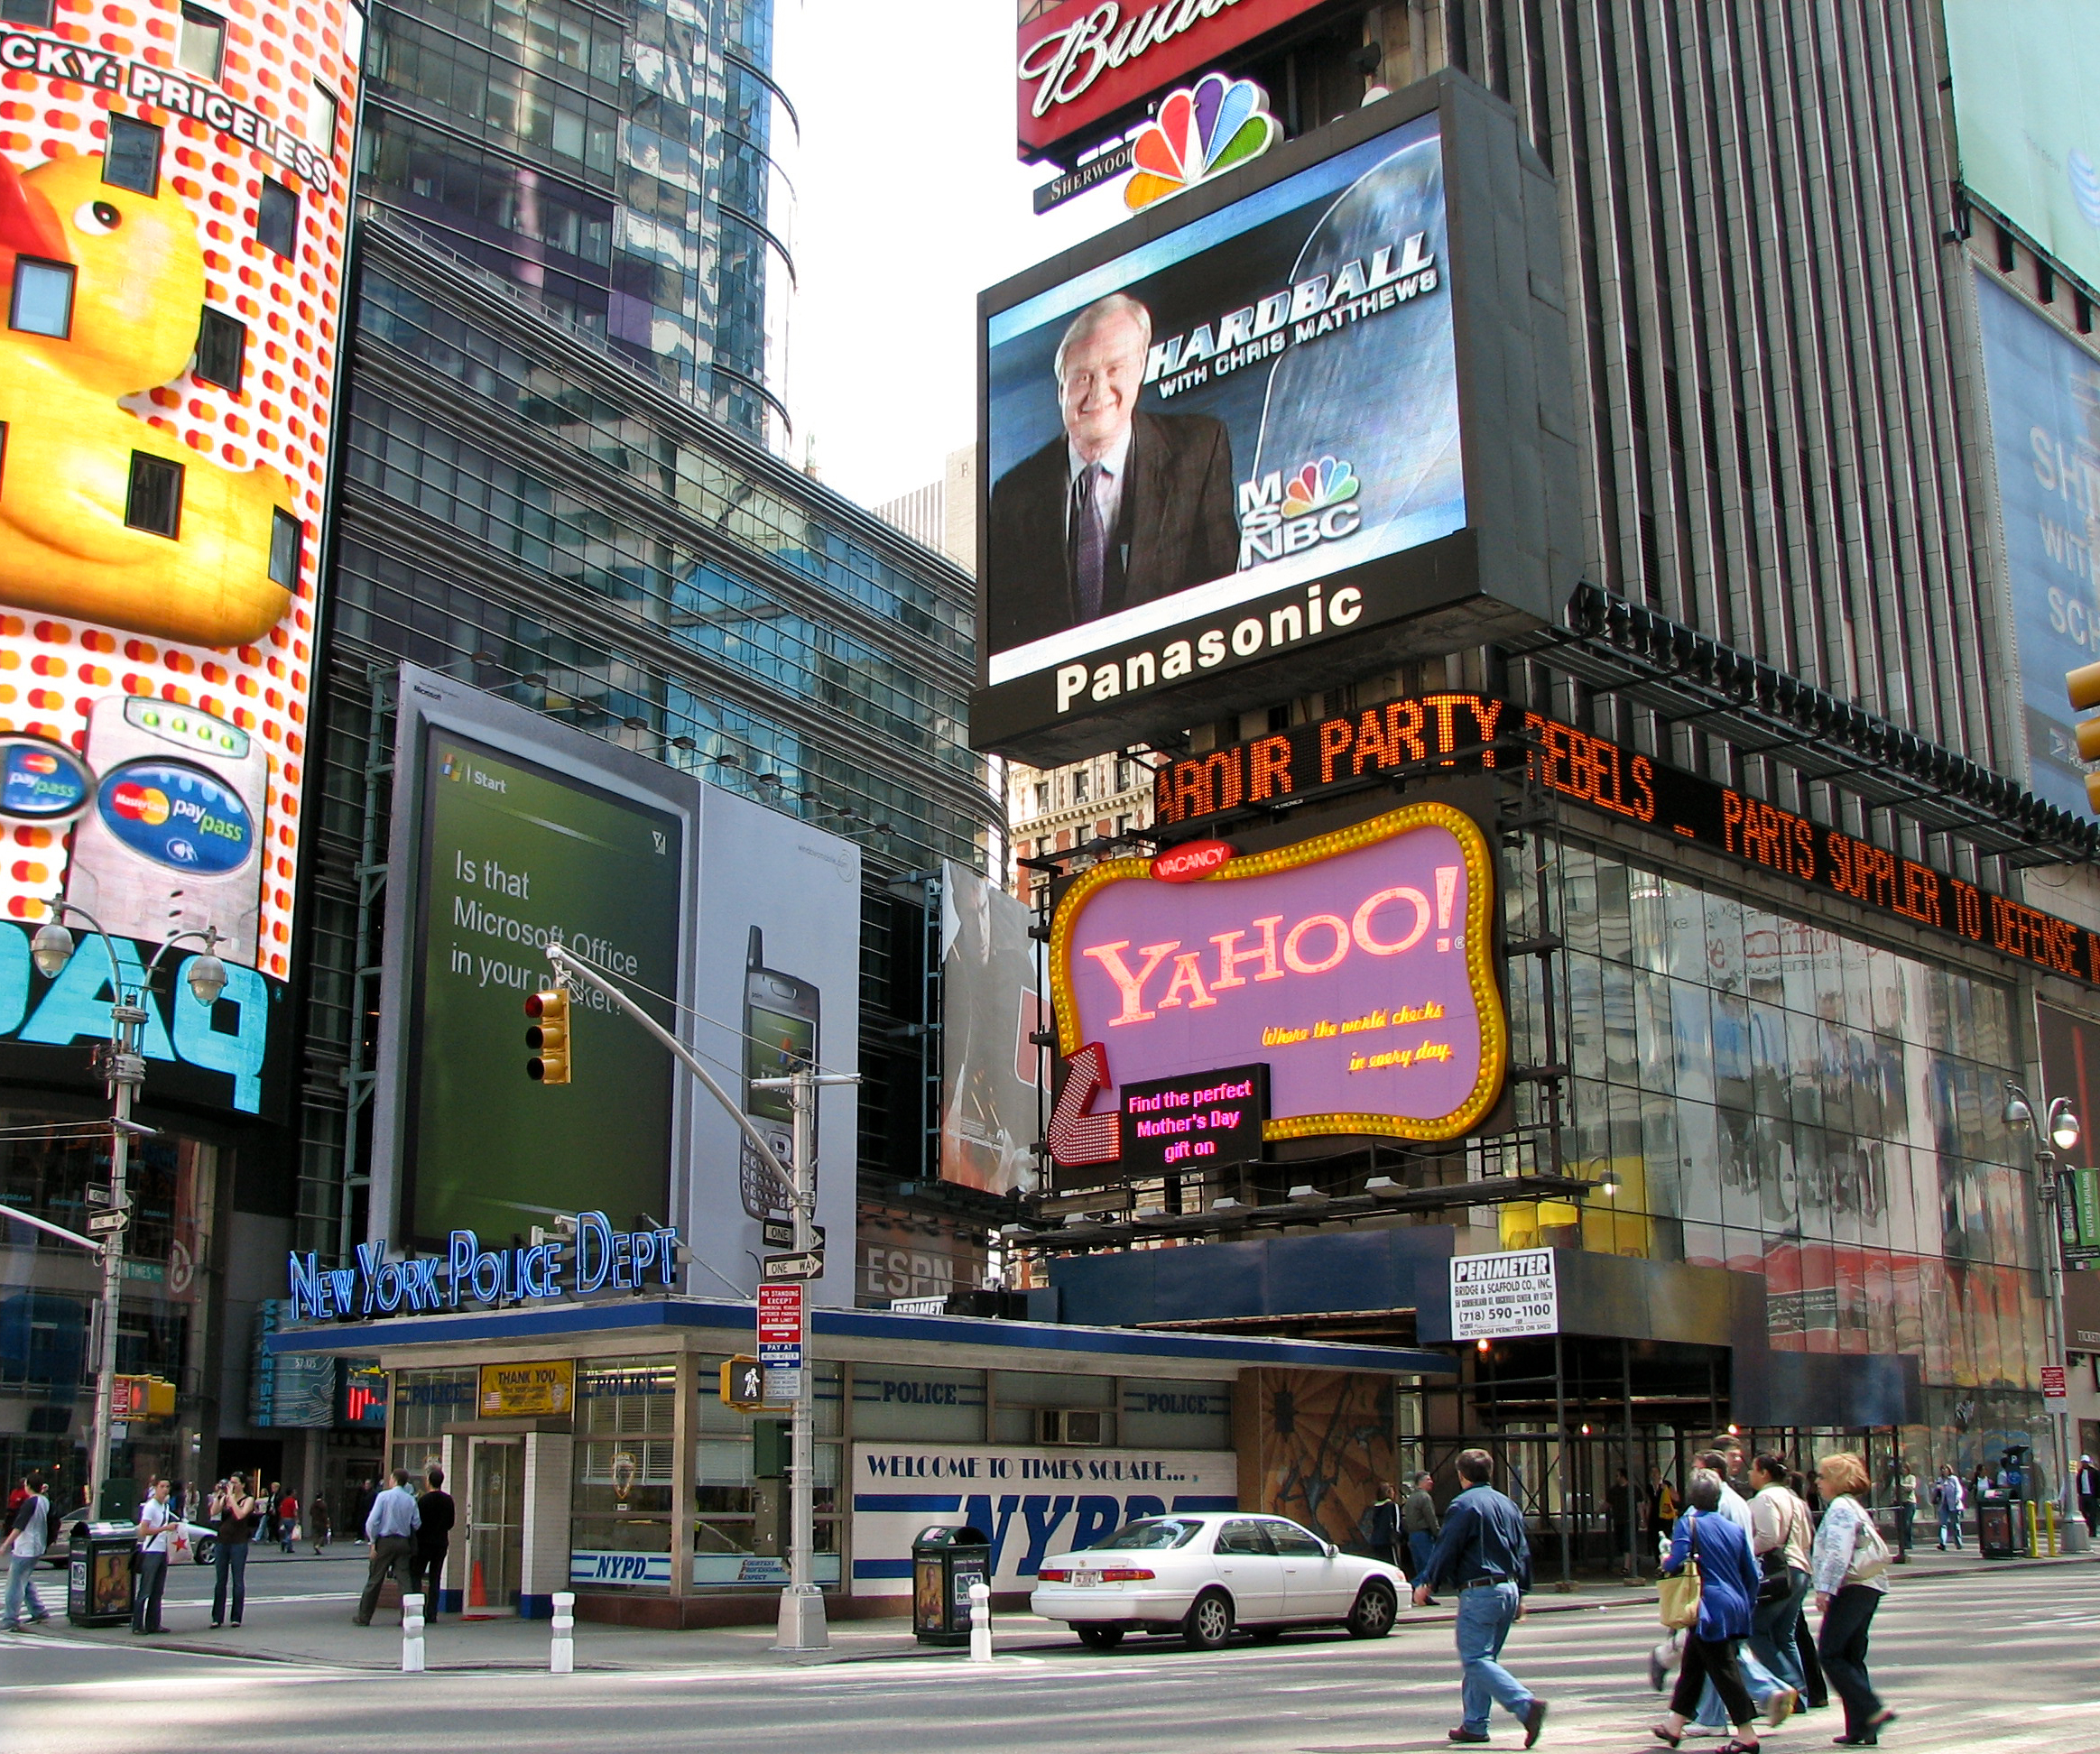 Times square new york city tourist attractions wiki for Things to do in times square nyc